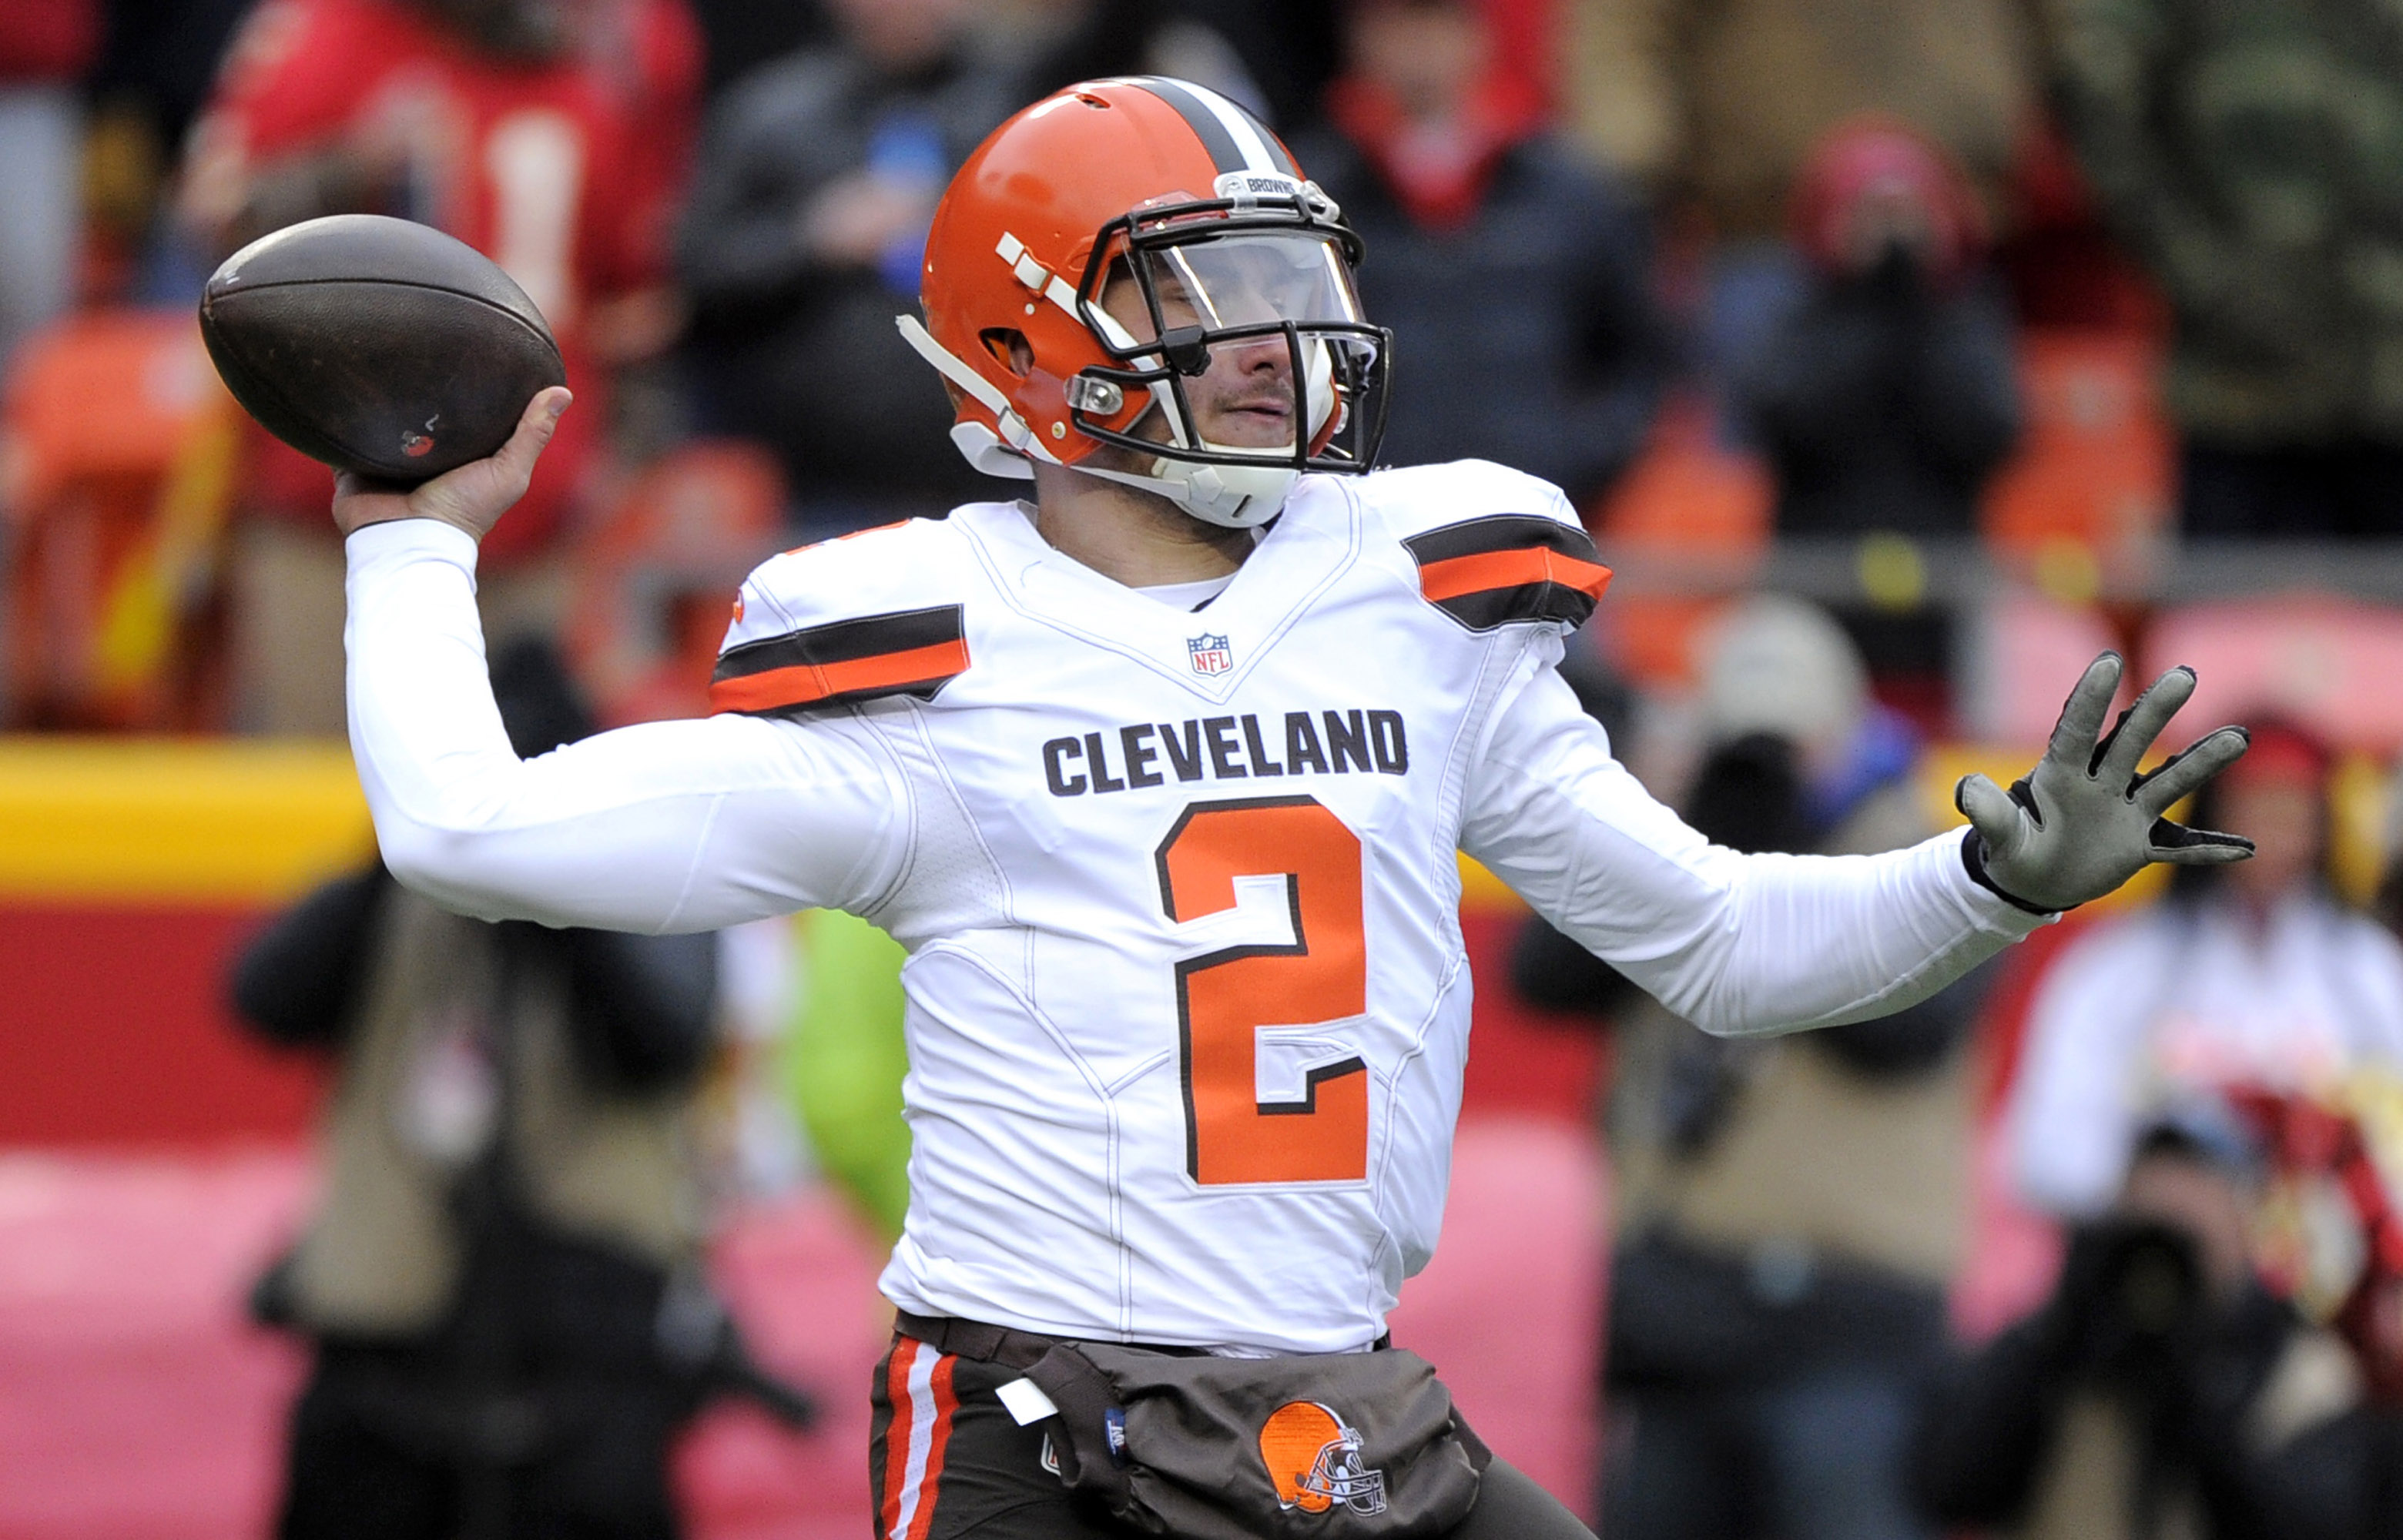 FILE - In this Dec. 27, 2015, file photo, Cleveland Browns quarterback Johnny Manziel (2) throws during the first half of an NFL football game against the Kansas City Chiefs in Kansas City, Mo. Manziel had a second straight troubling season with Cleveland